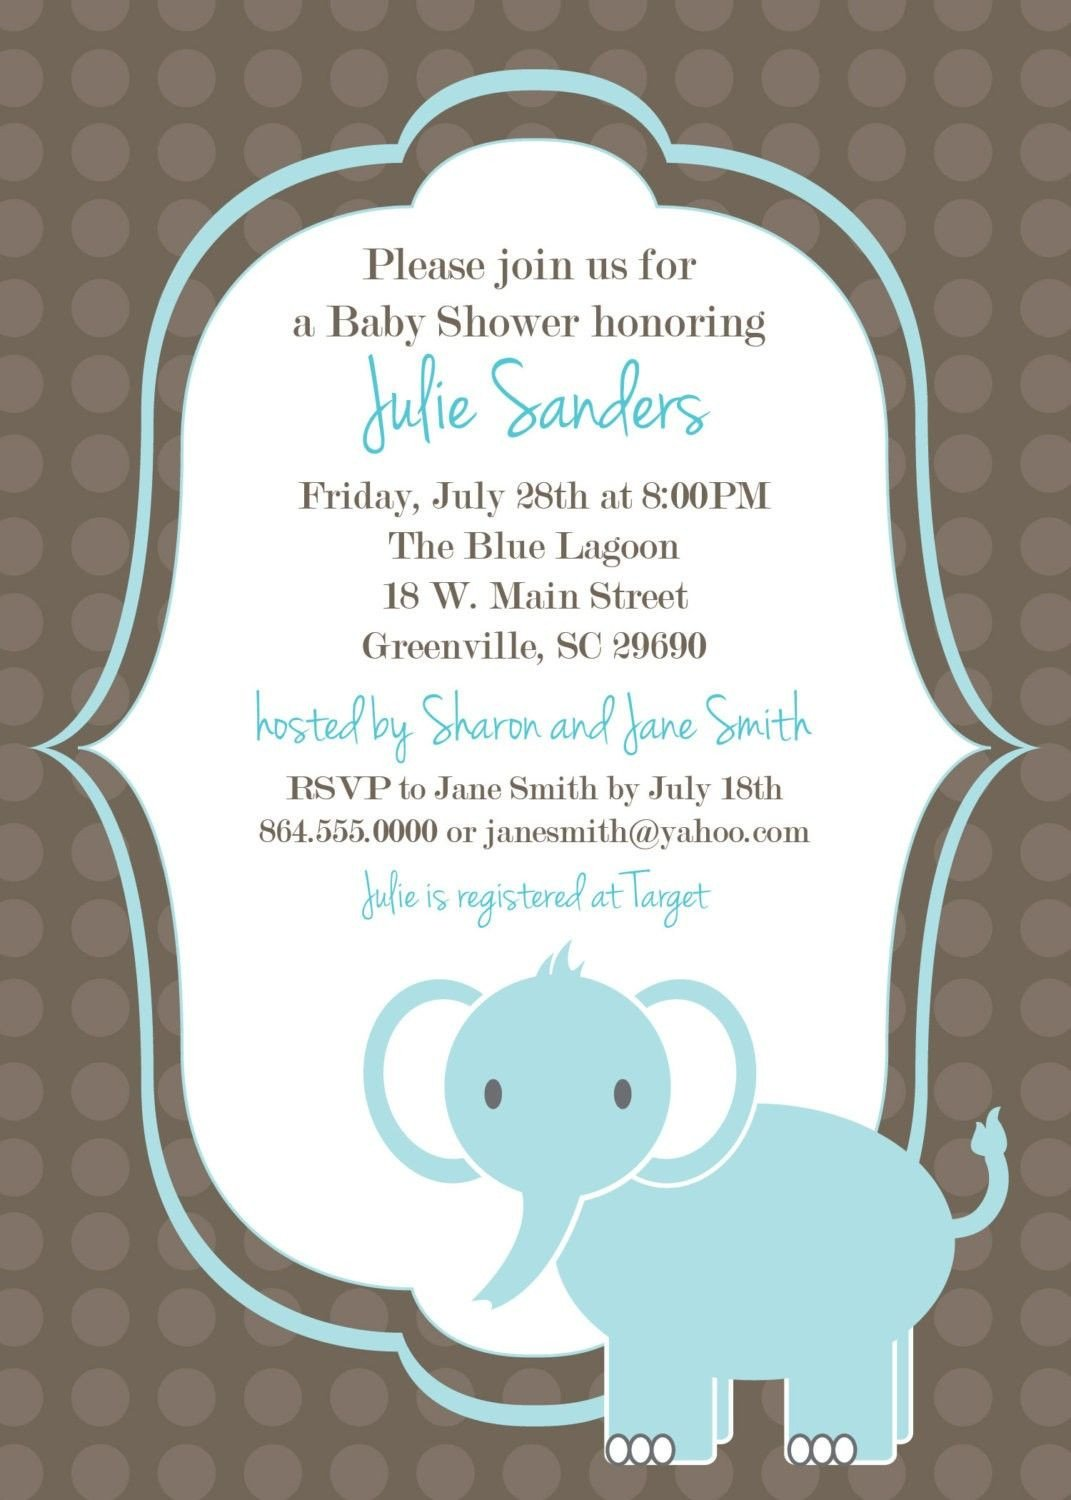 Baby Shower Invite Templates Download Free Template Got the Free Baby Shower